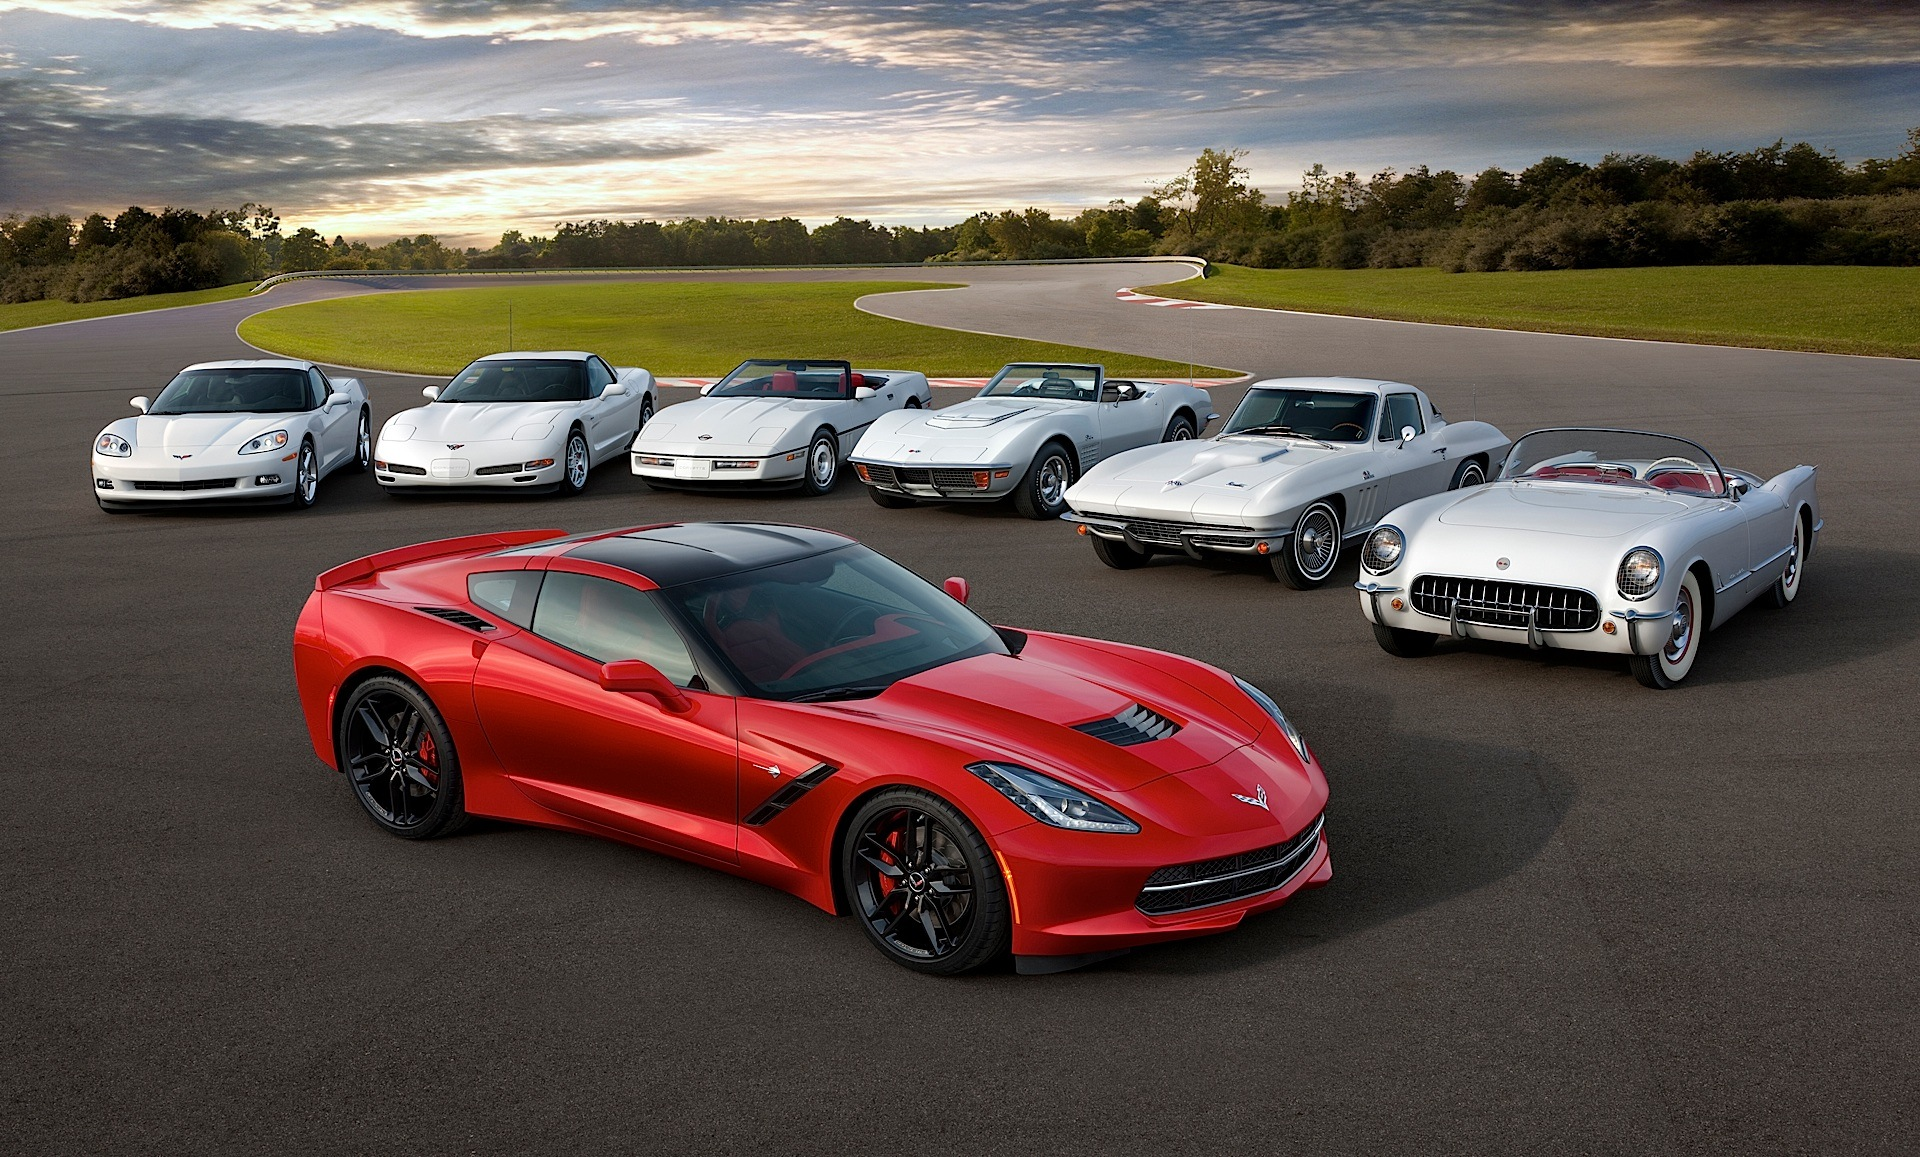 Chevrolet Corvette Stingray #4